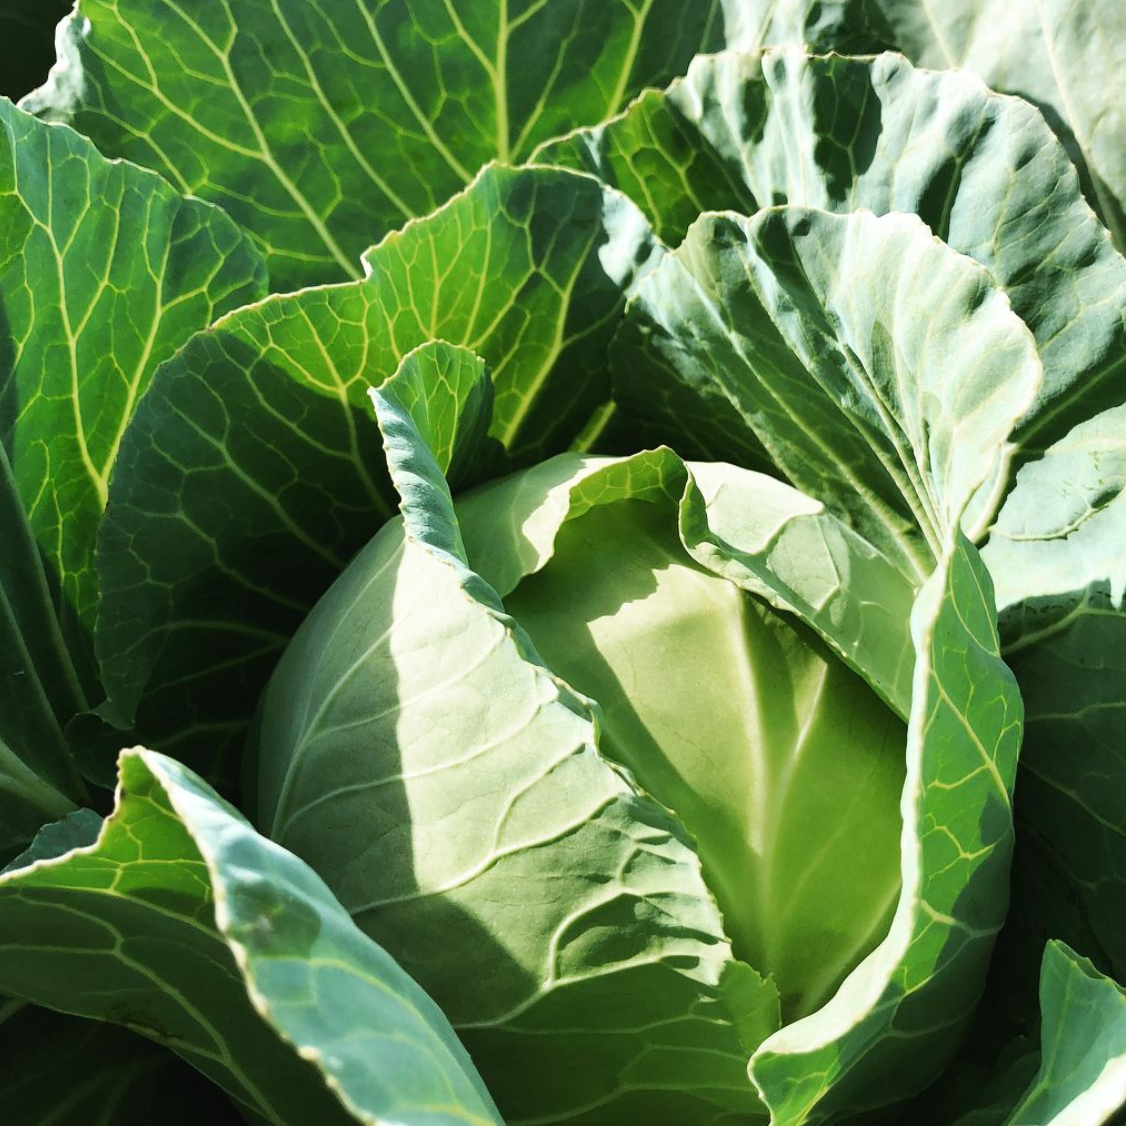 Organic cabbage in the field